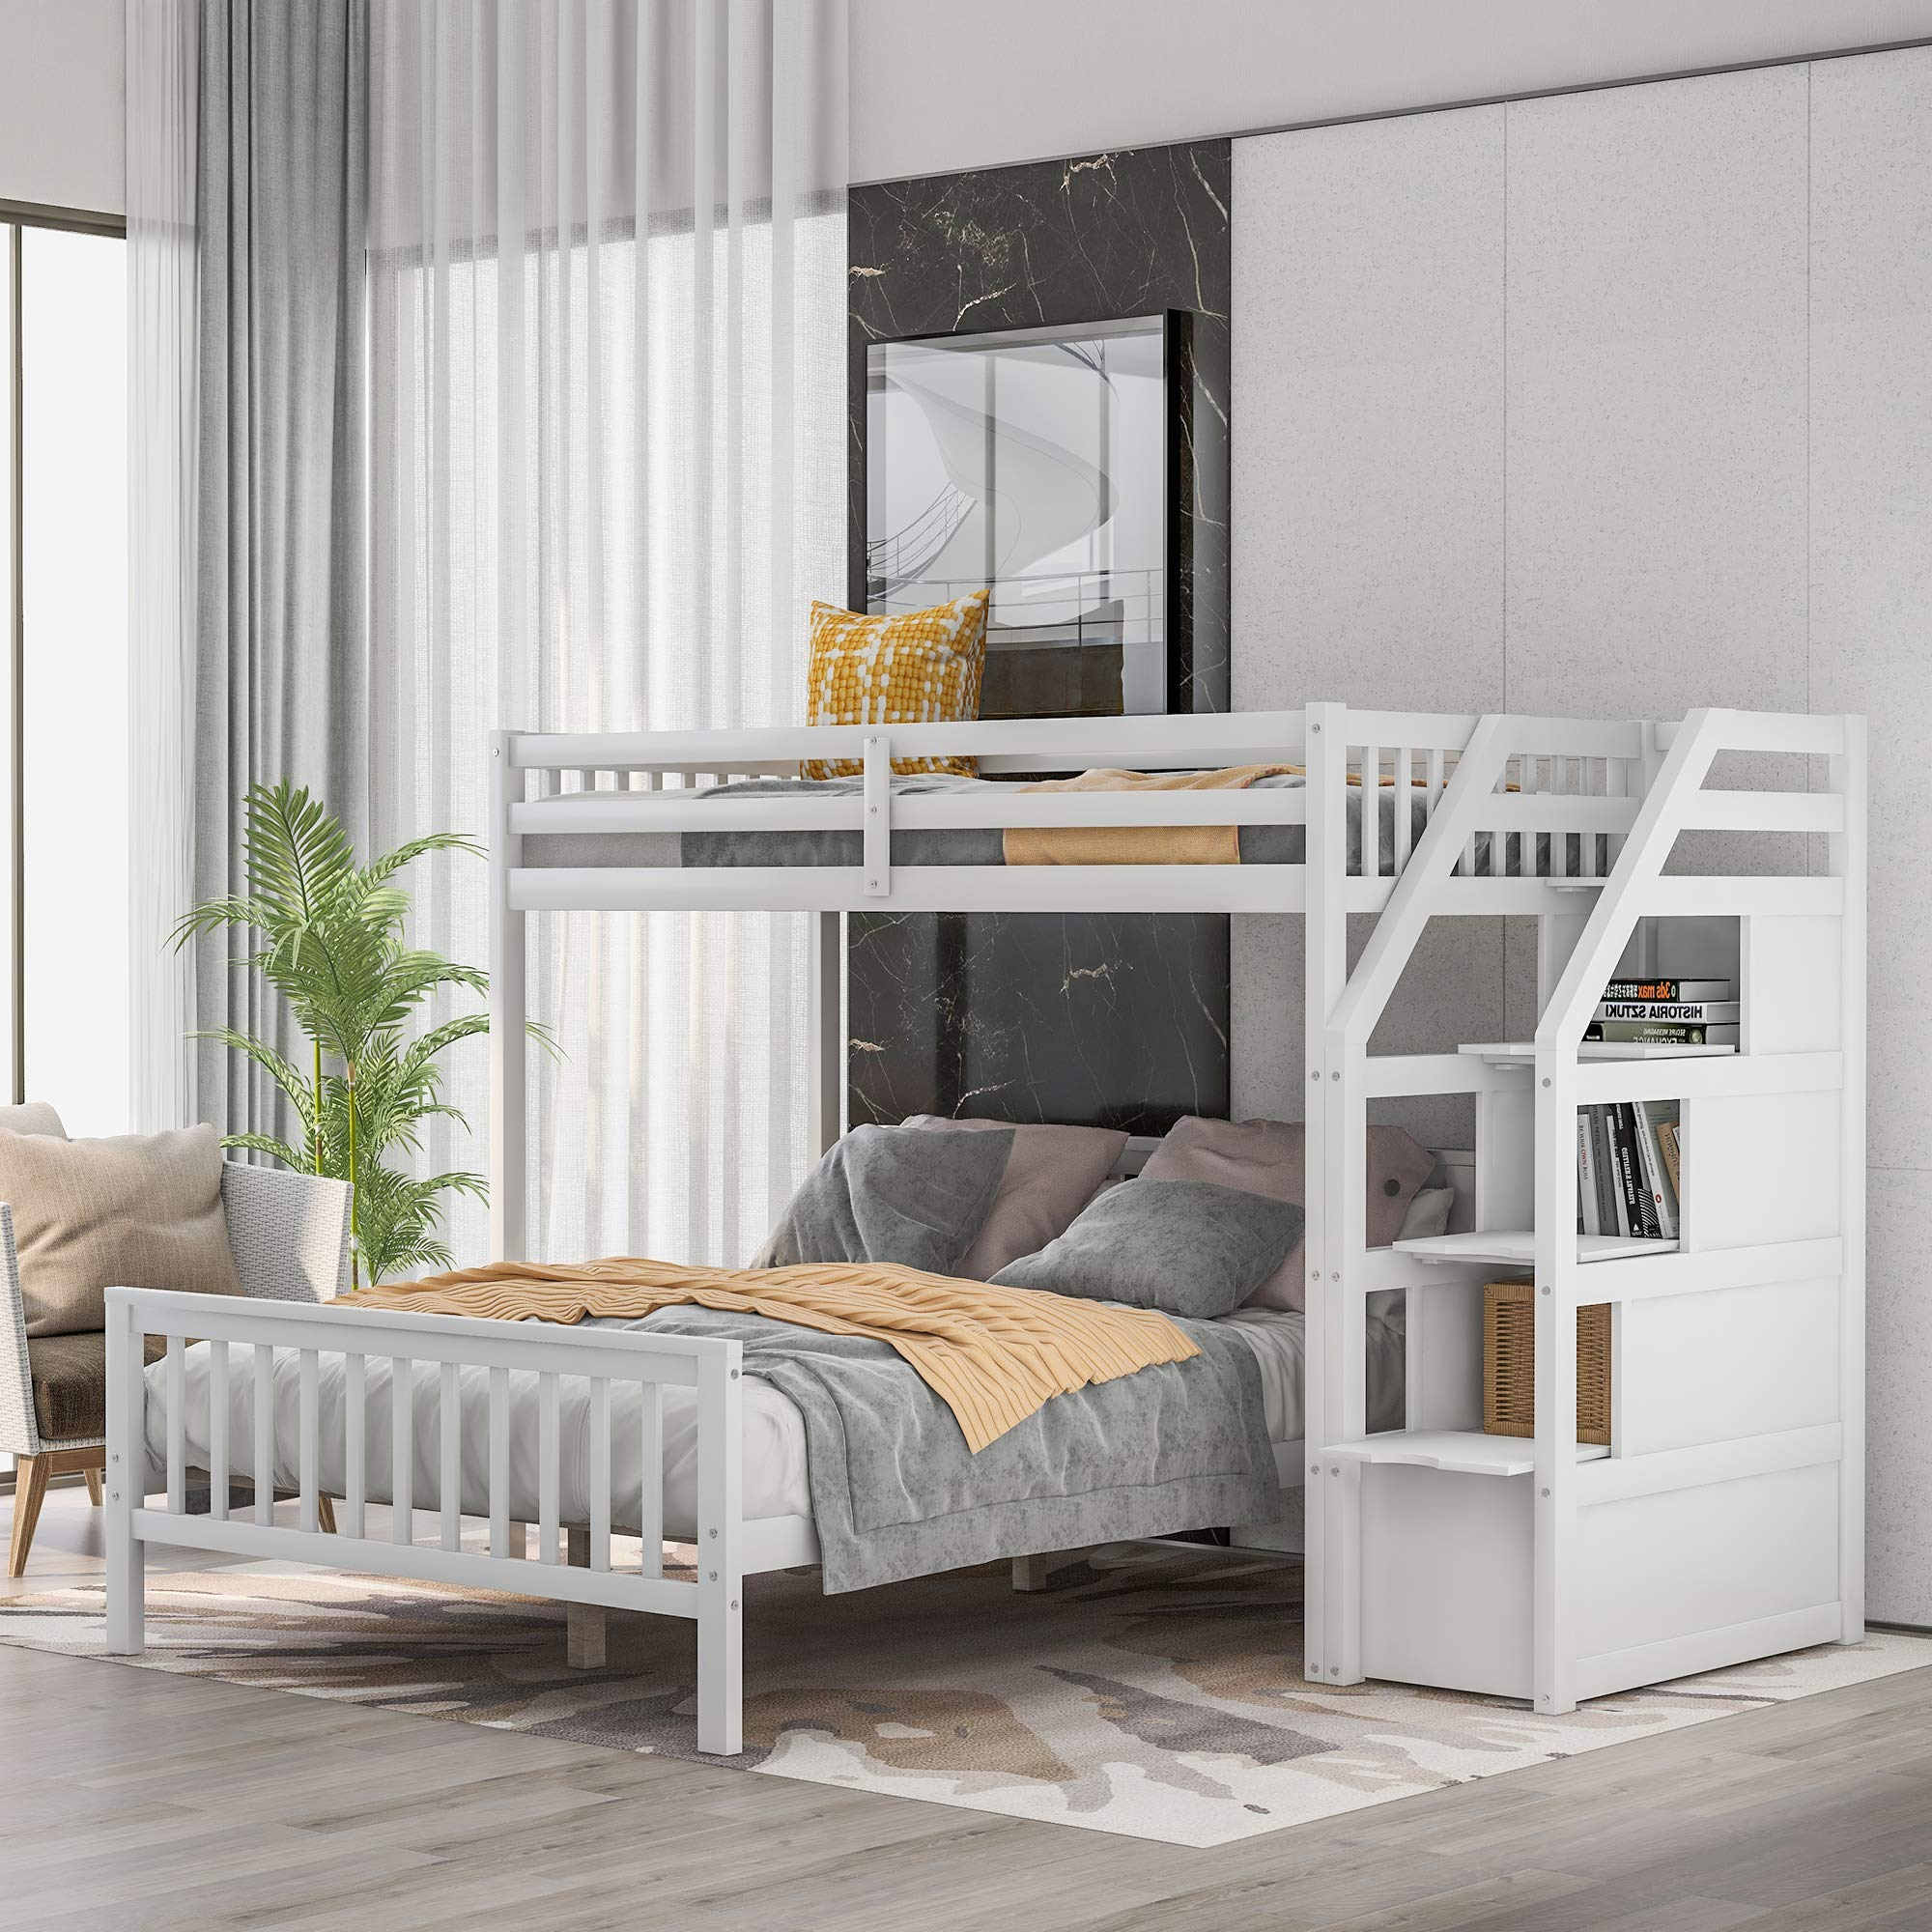 Twin Over Full Bunk Bed For Kids Wood L Shaped Twin Loft With Storage And Full Platform Bed For Kids White Buy Online In Belize At Belize Desertcart Com Productid 206868993